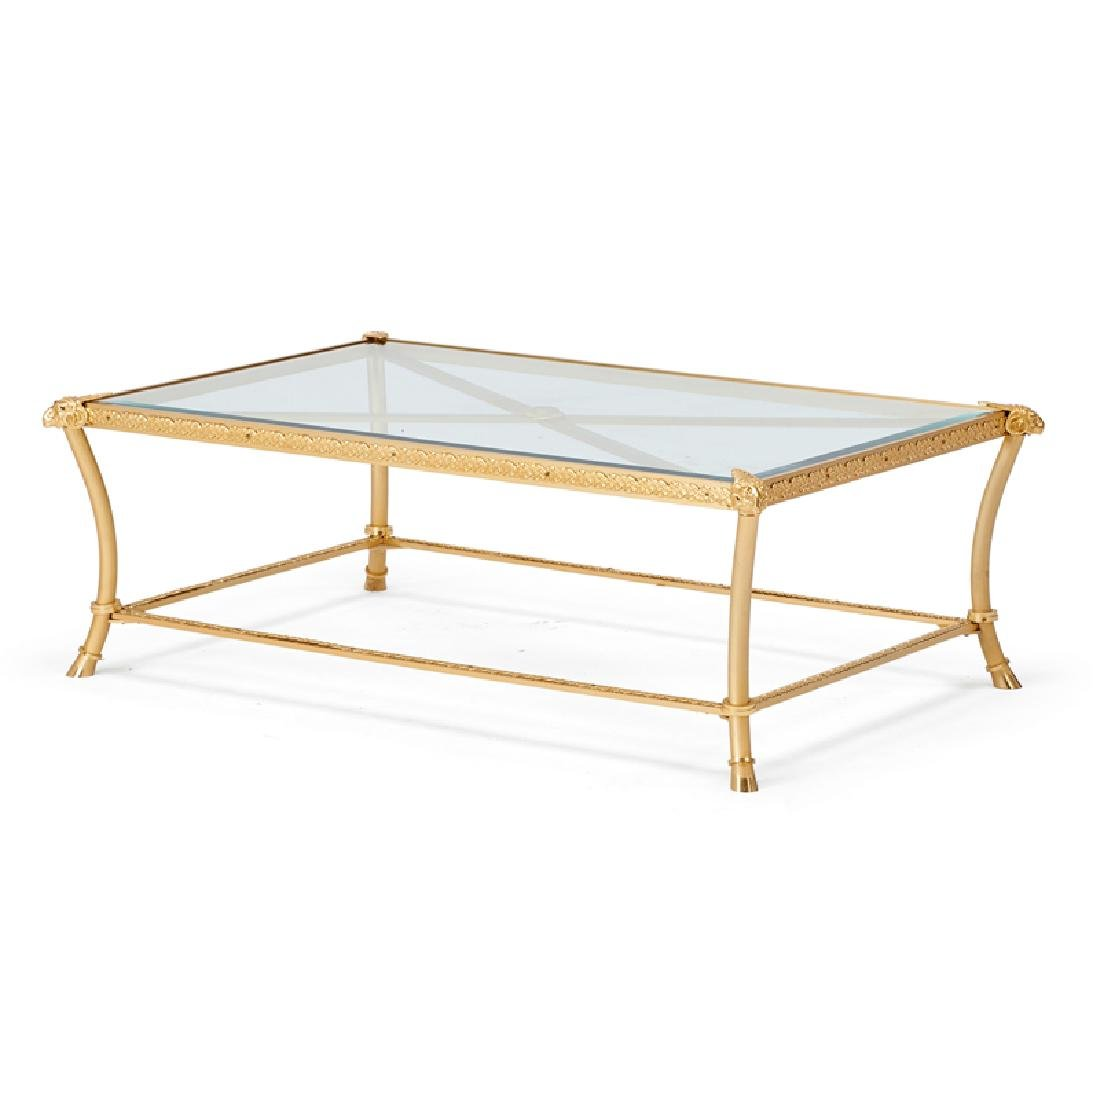 NEOCLASSICAL STYLE GILT BRONZE COFFEE TABLE